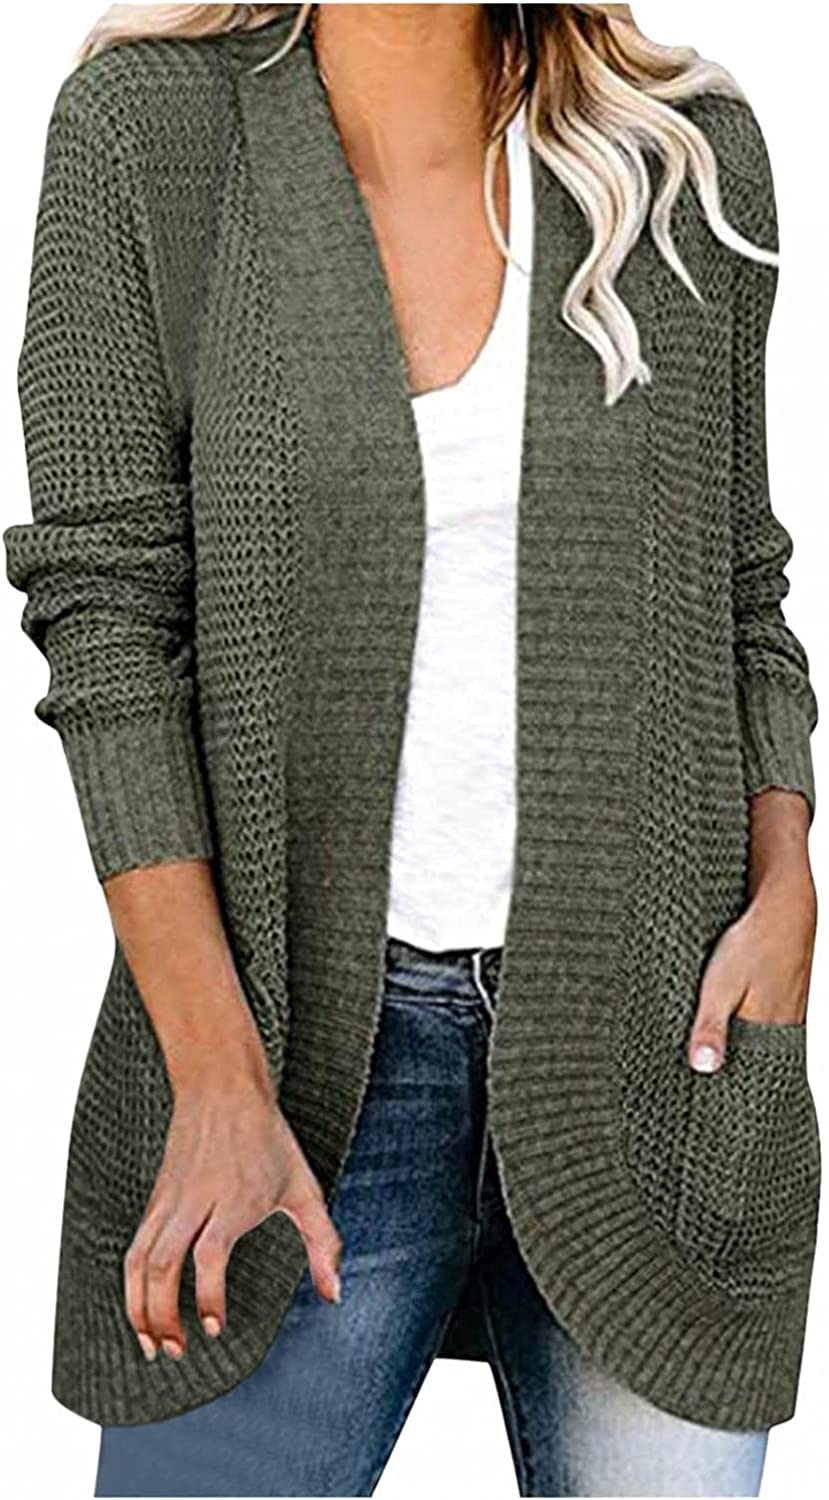 AODONG Cardigan for Women Long Sleeve Casual Knitted Sweater Open Front Cardigan Loose Outerwear with Pockets